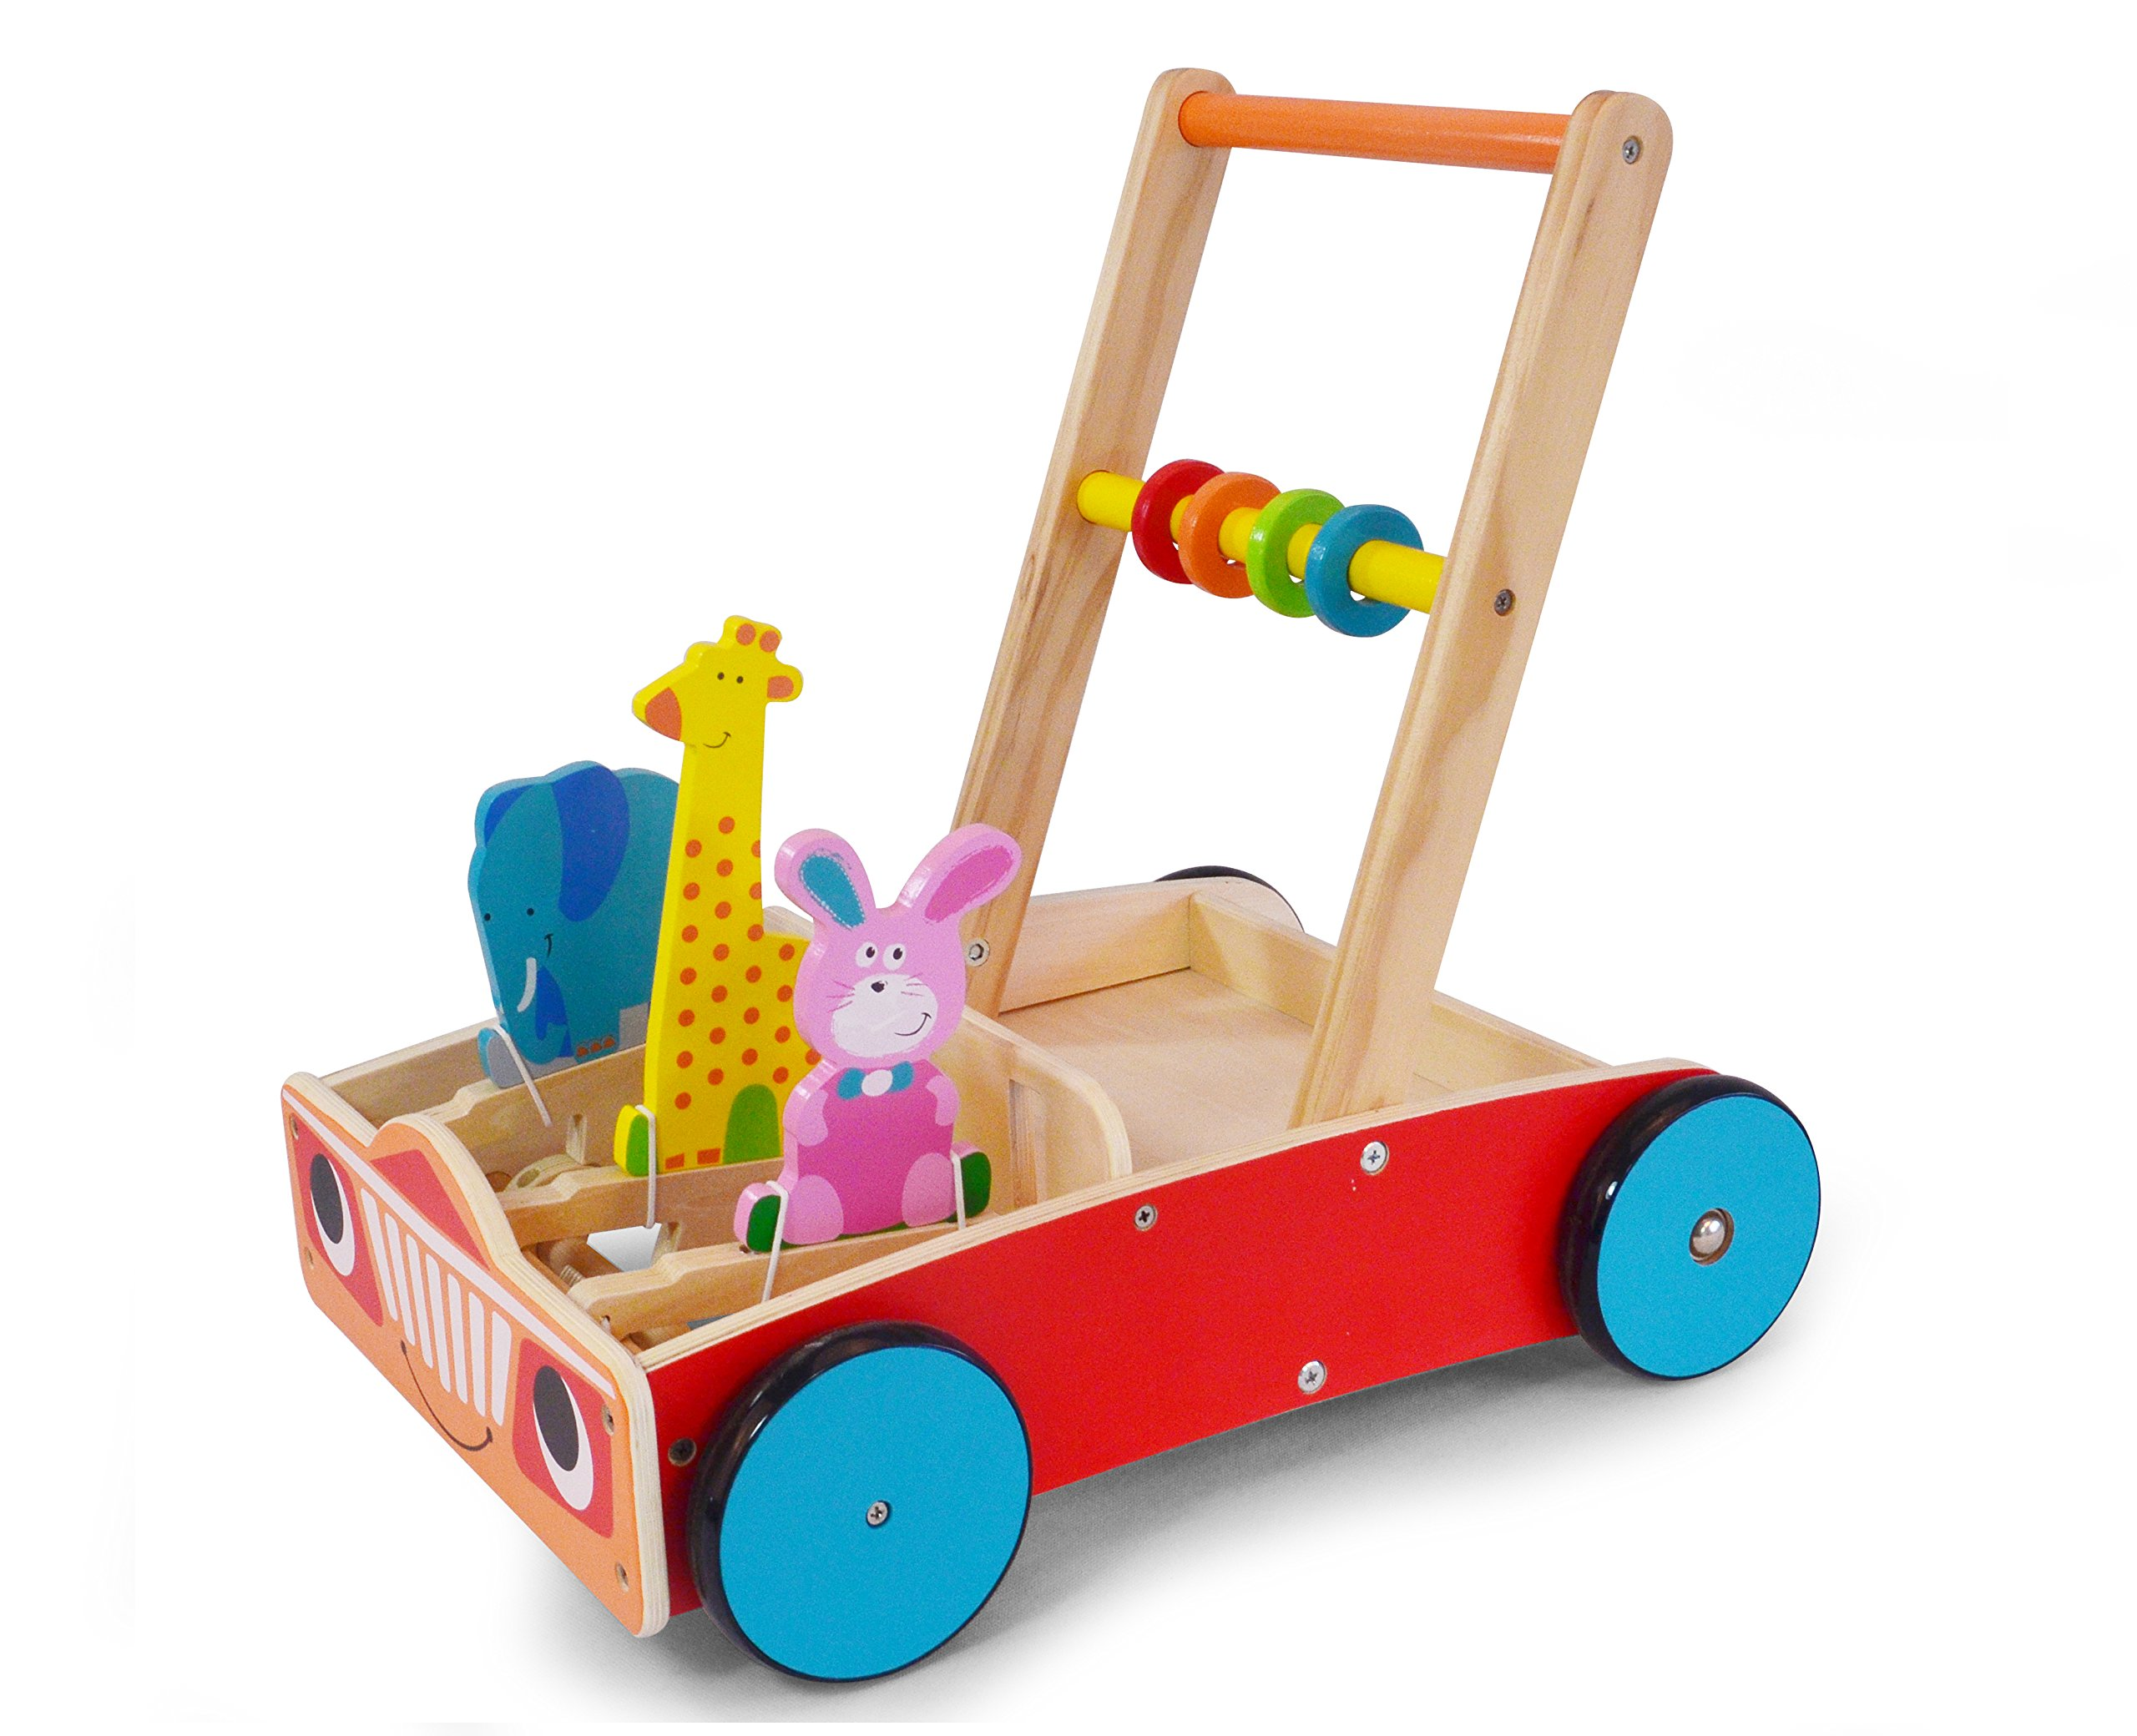 May & Z Baby Push Toy Walker - Wooden Walking Wagon with Gift of Building Blocks and Cartoon Animals for Toddlers